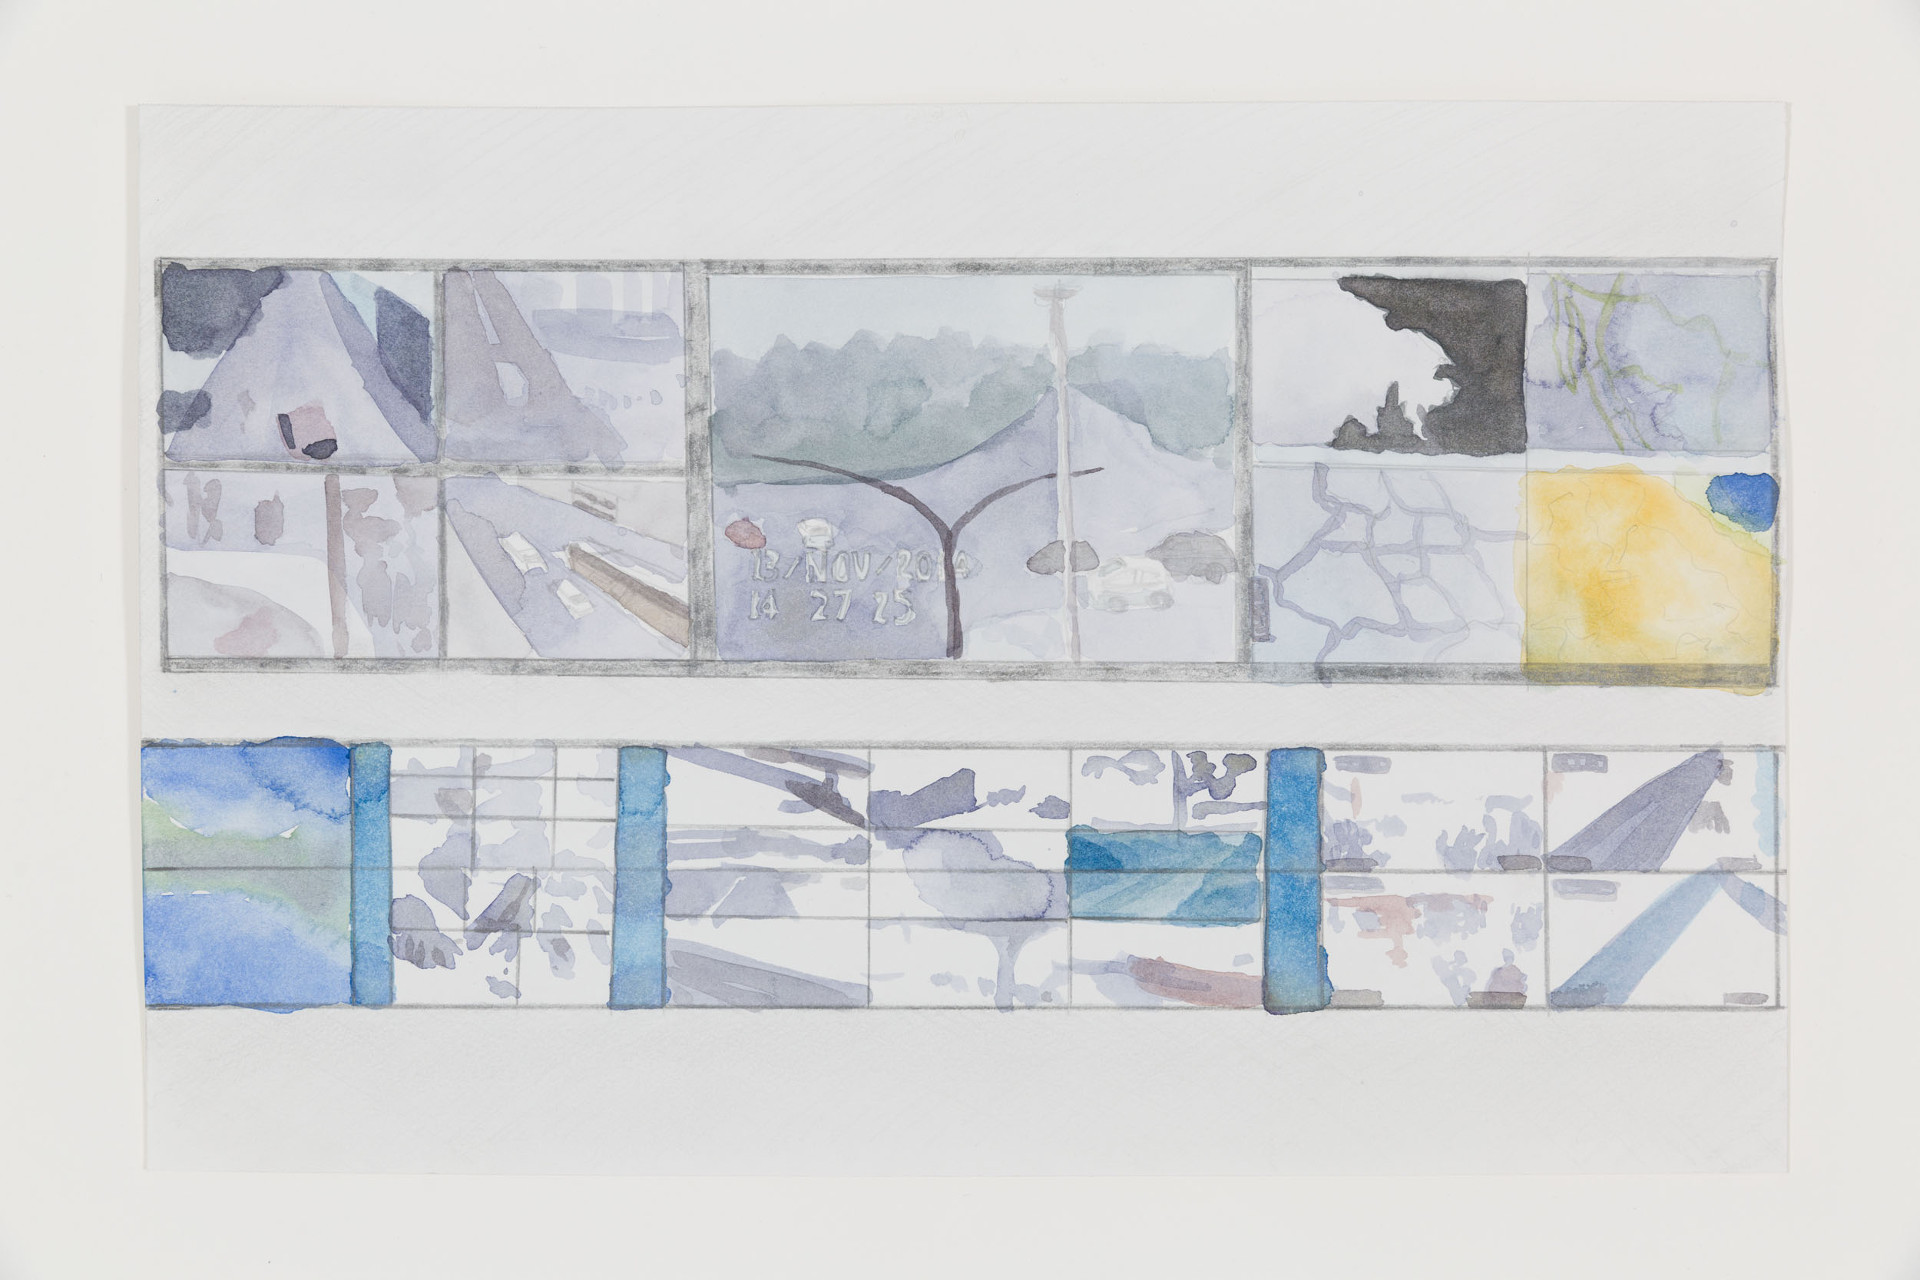 """Hillary Mushkin, """"Control Room Main Screen Array,"""" C4i4, Mexico City, Mexico, 2014–15. Watercolor and graphite on paper."""